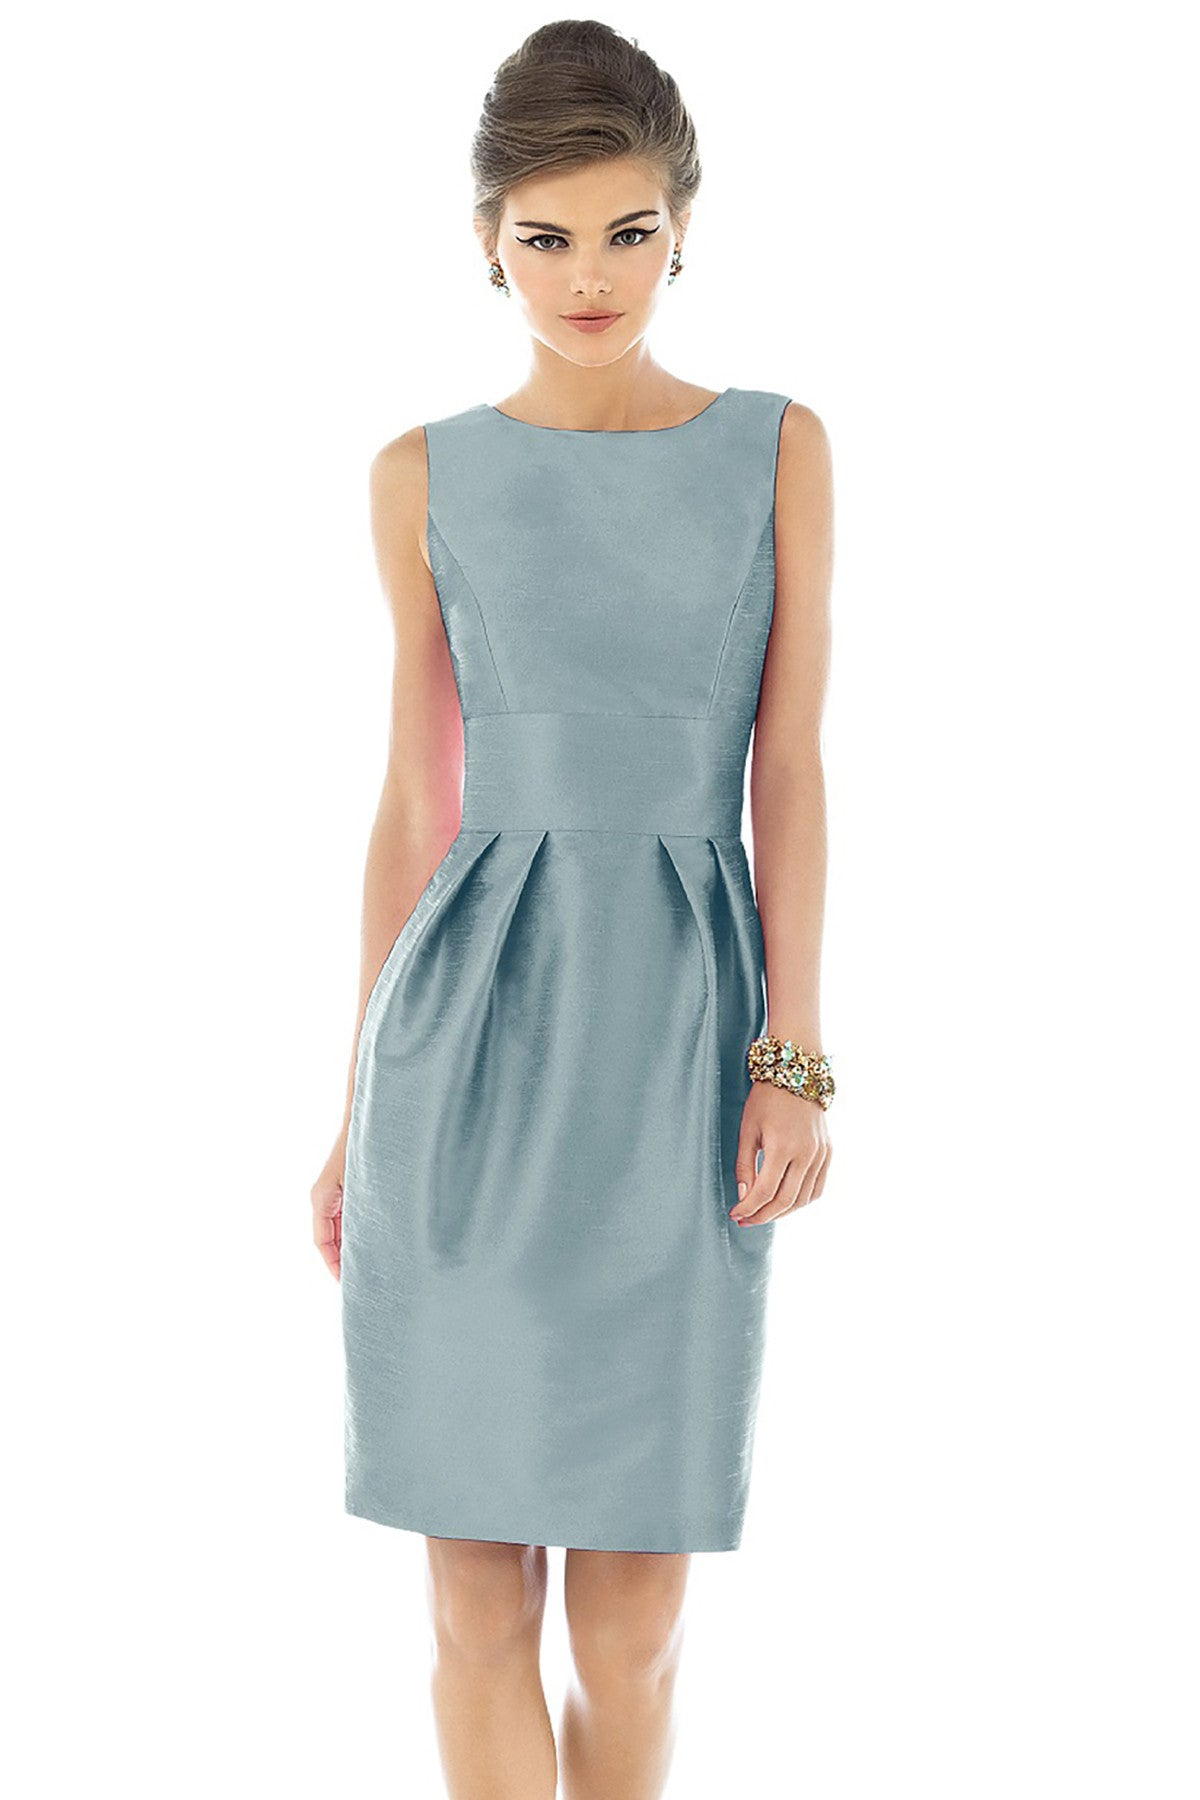 6e095468cab Alfred Sung D522 Bridesmaid Dress - Weddings by Lo